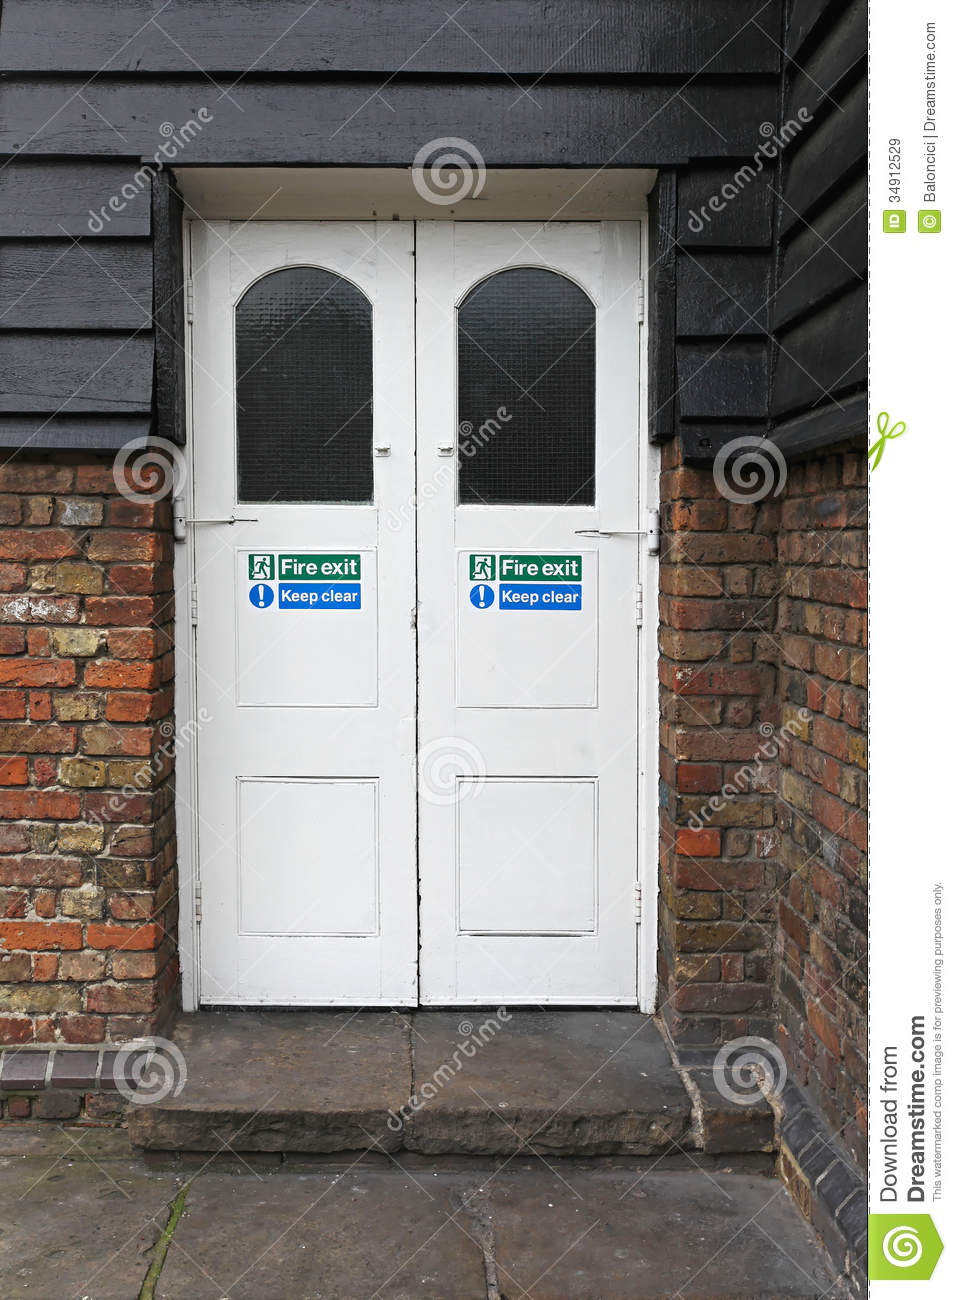 Fire Exit Stock Image Image Of Exit Double White Doors